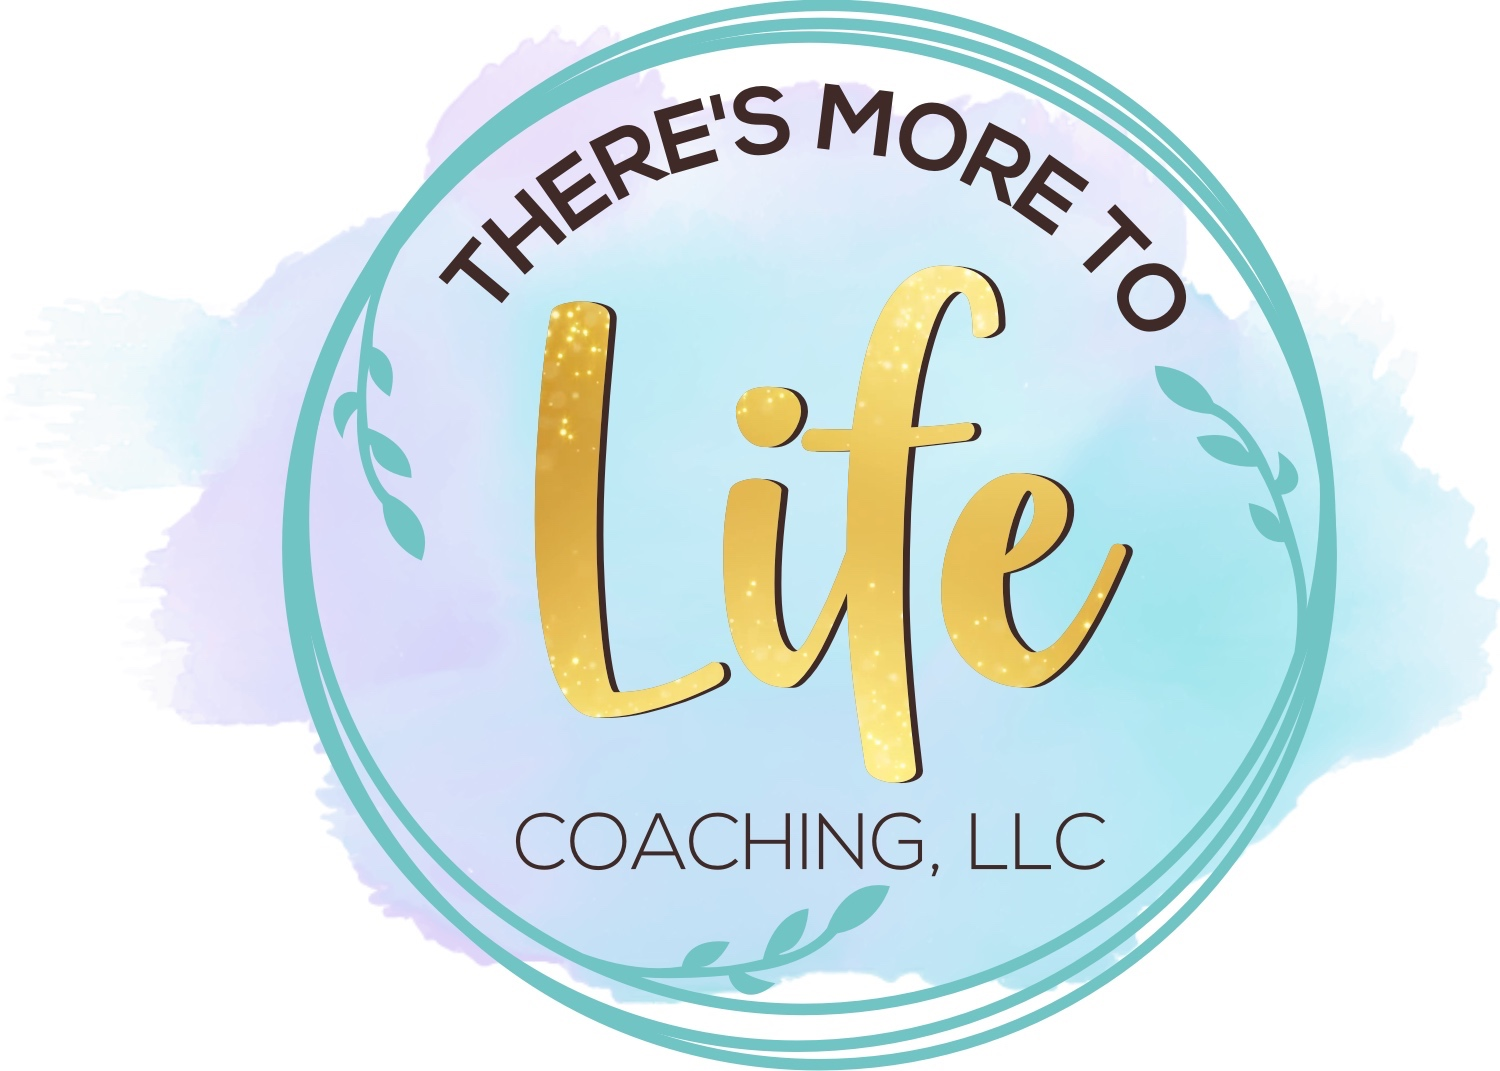 There's More to Life Coaching